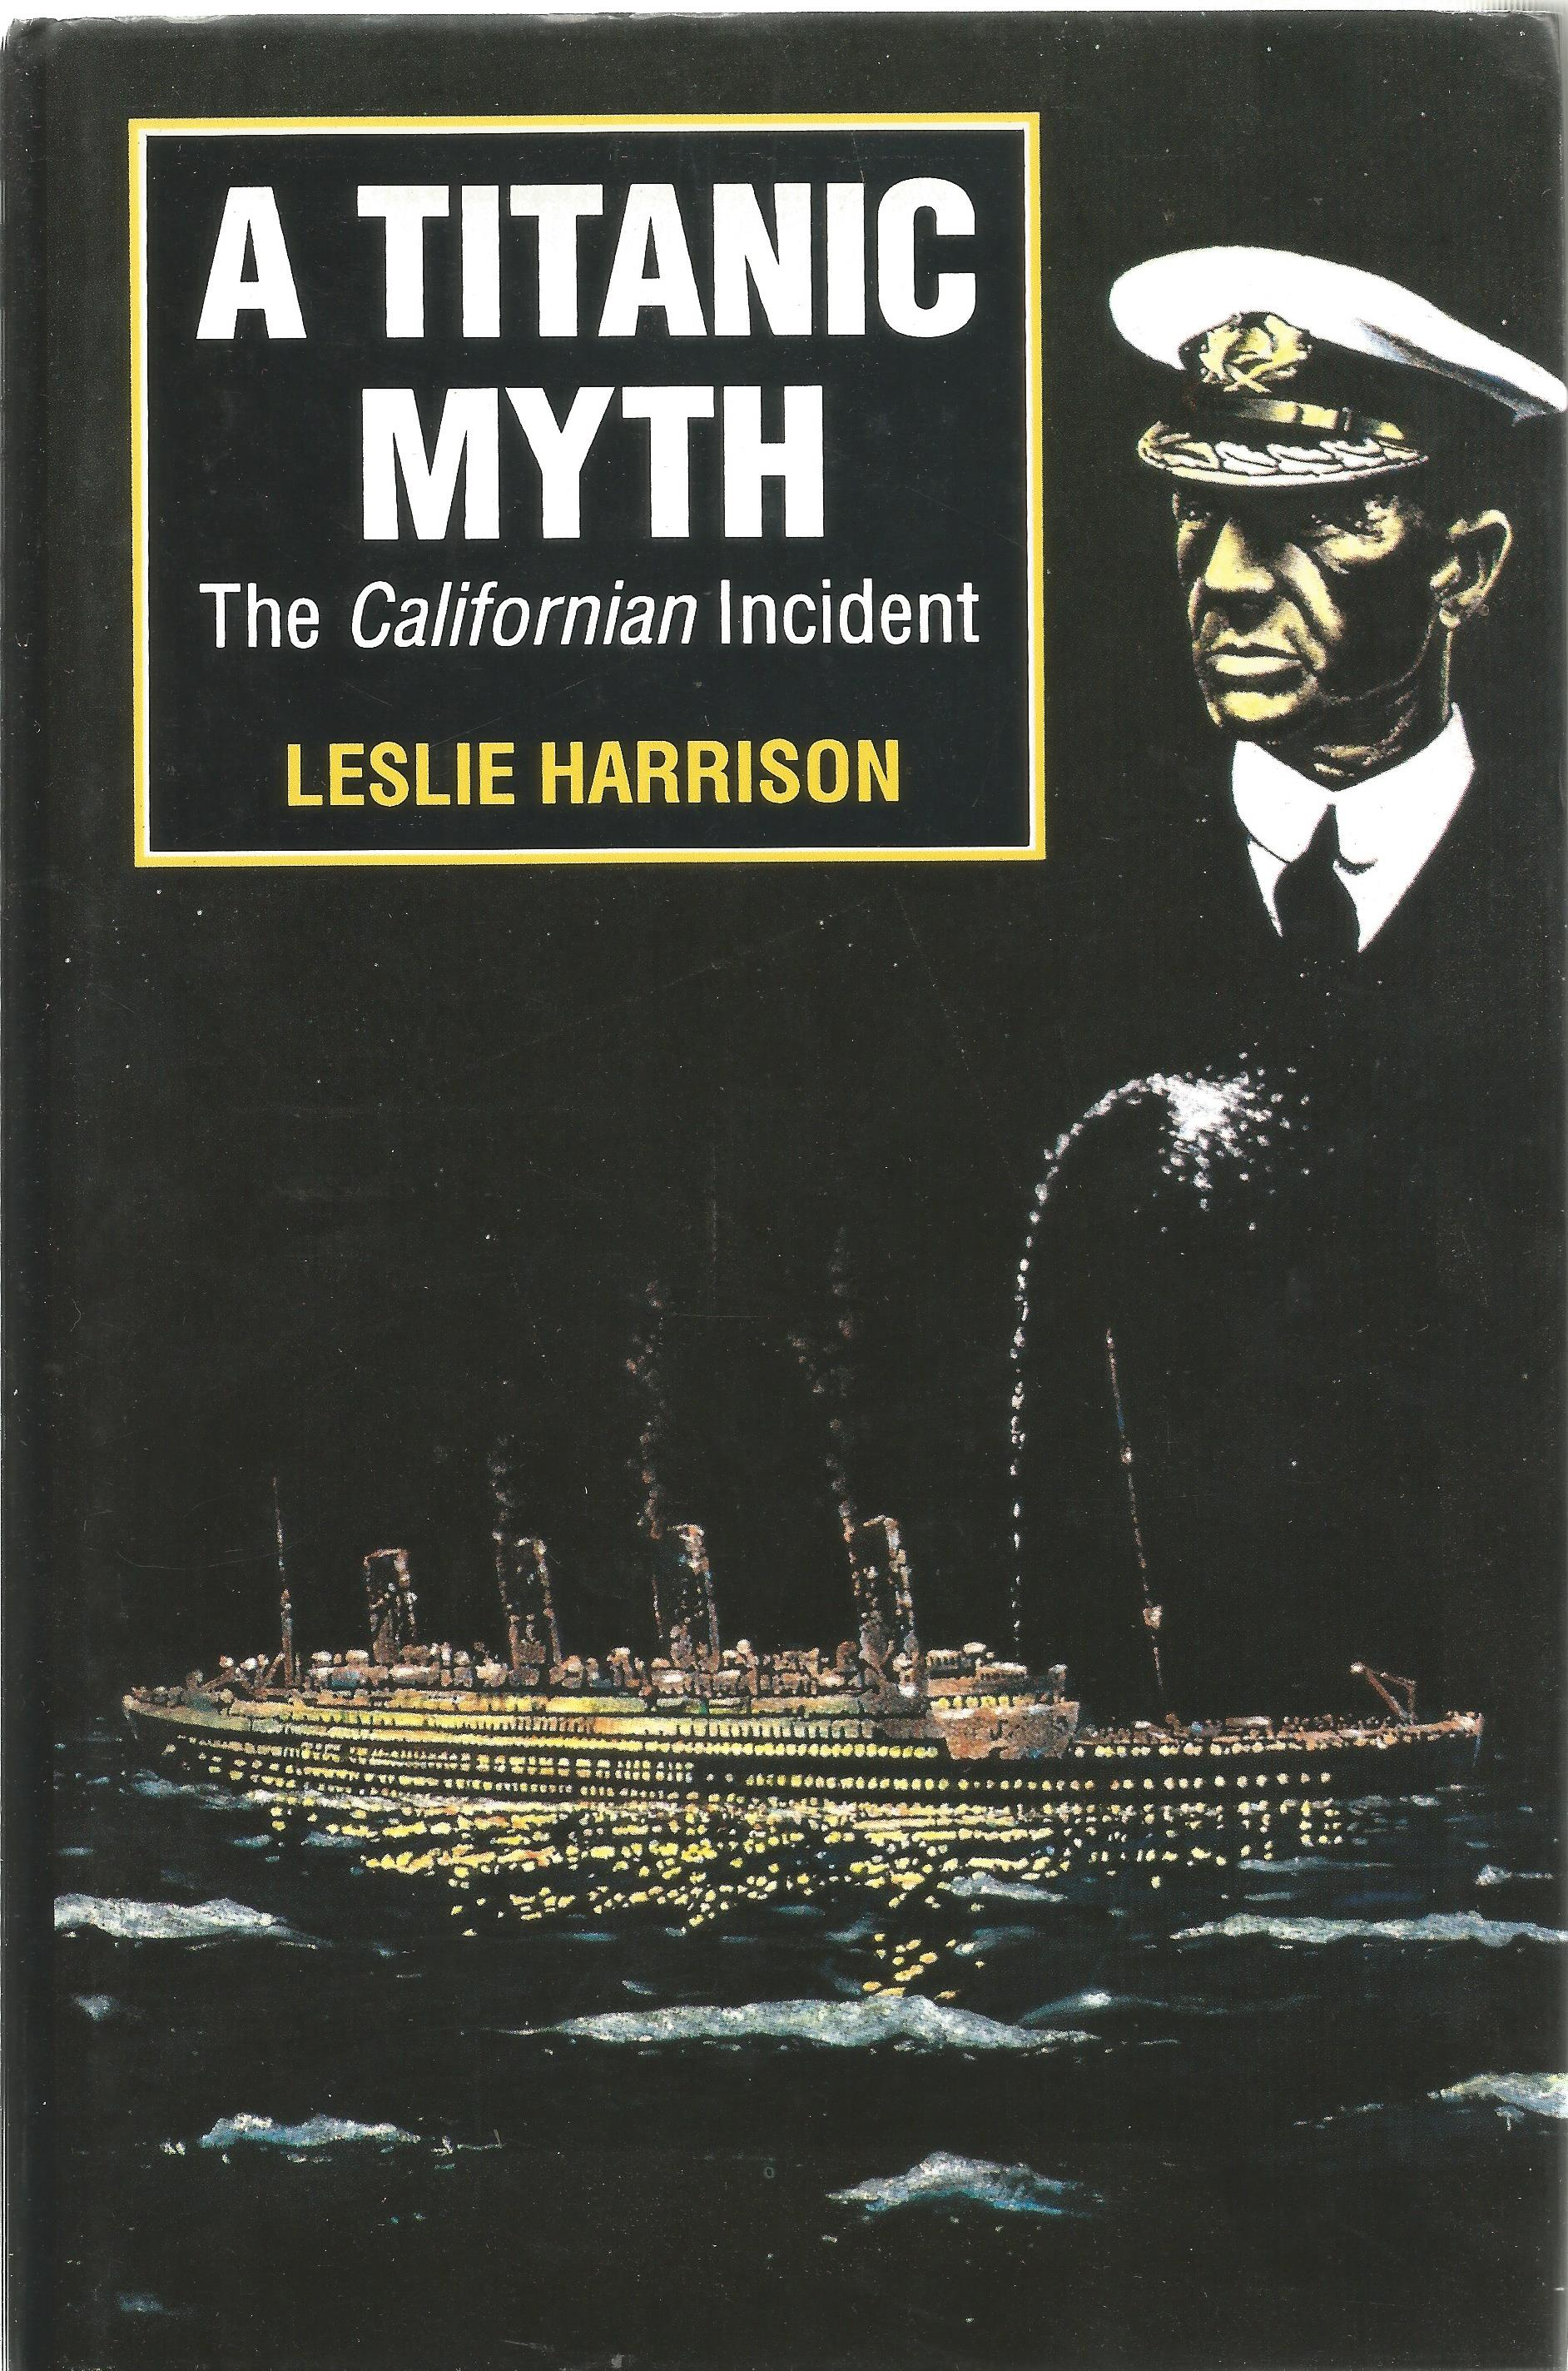 Titanic A Myth unsigned hardback boo with dust jacket by Leslie Harrison. 1992 second edition in